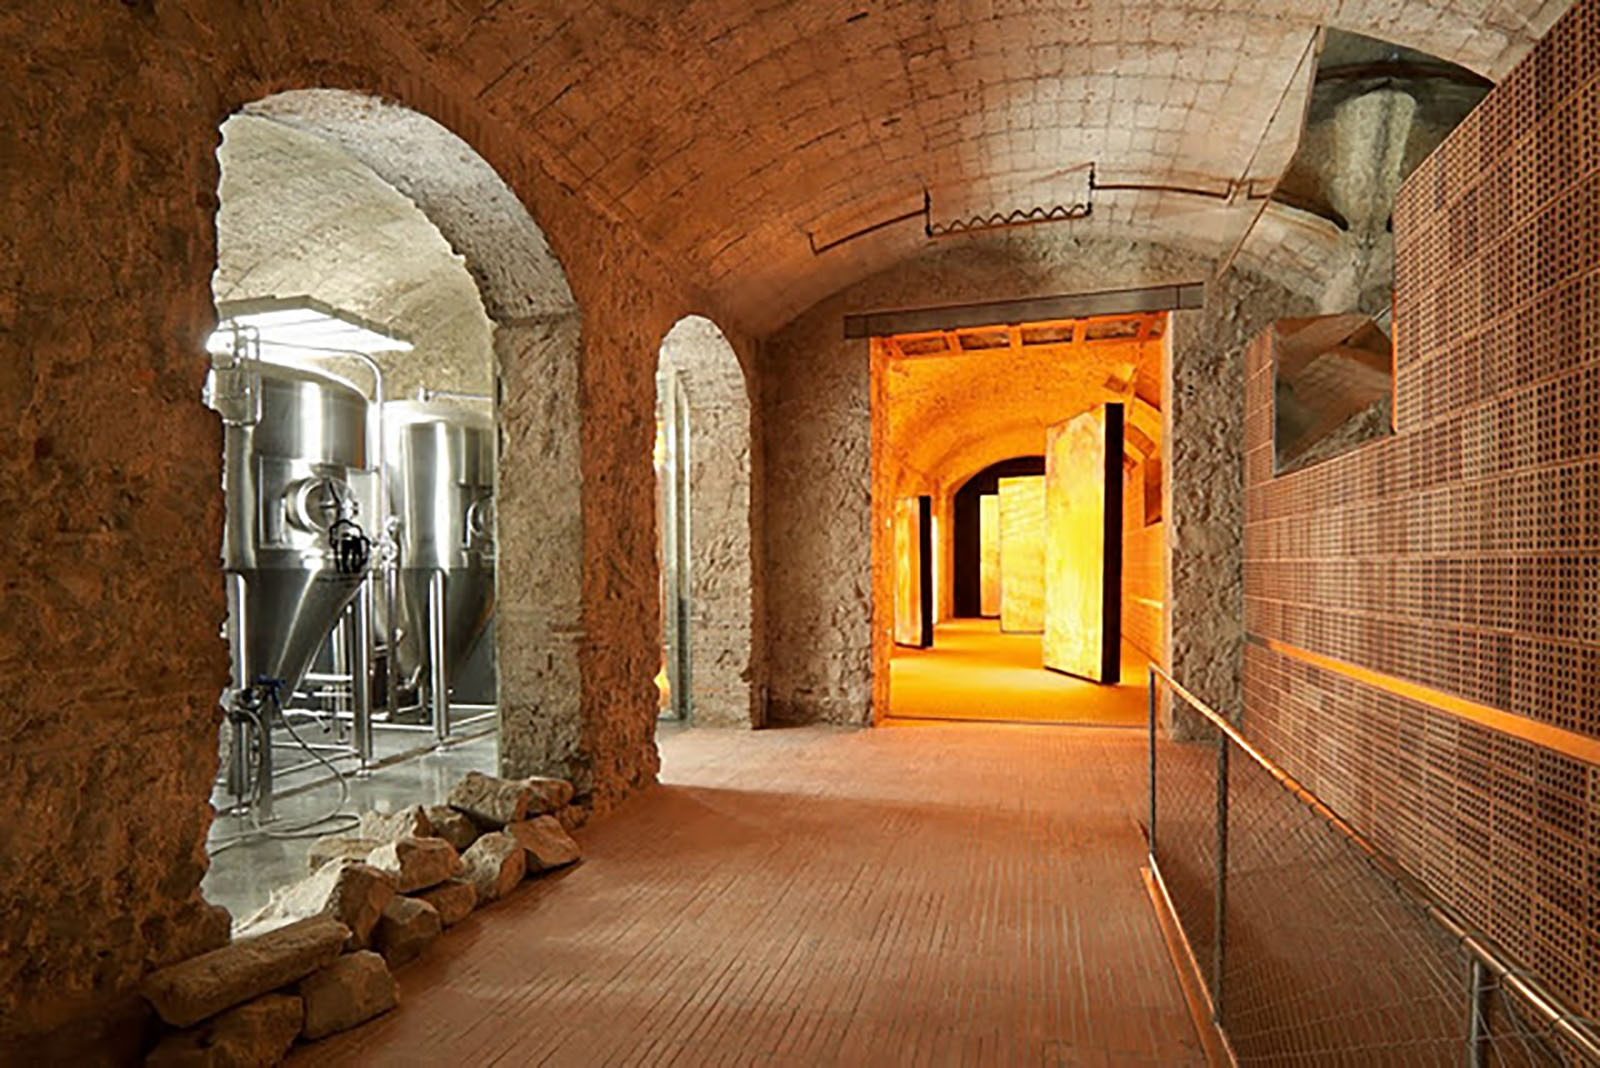 The Moritz restaurant and brewery situated in the heart of Barcelona.